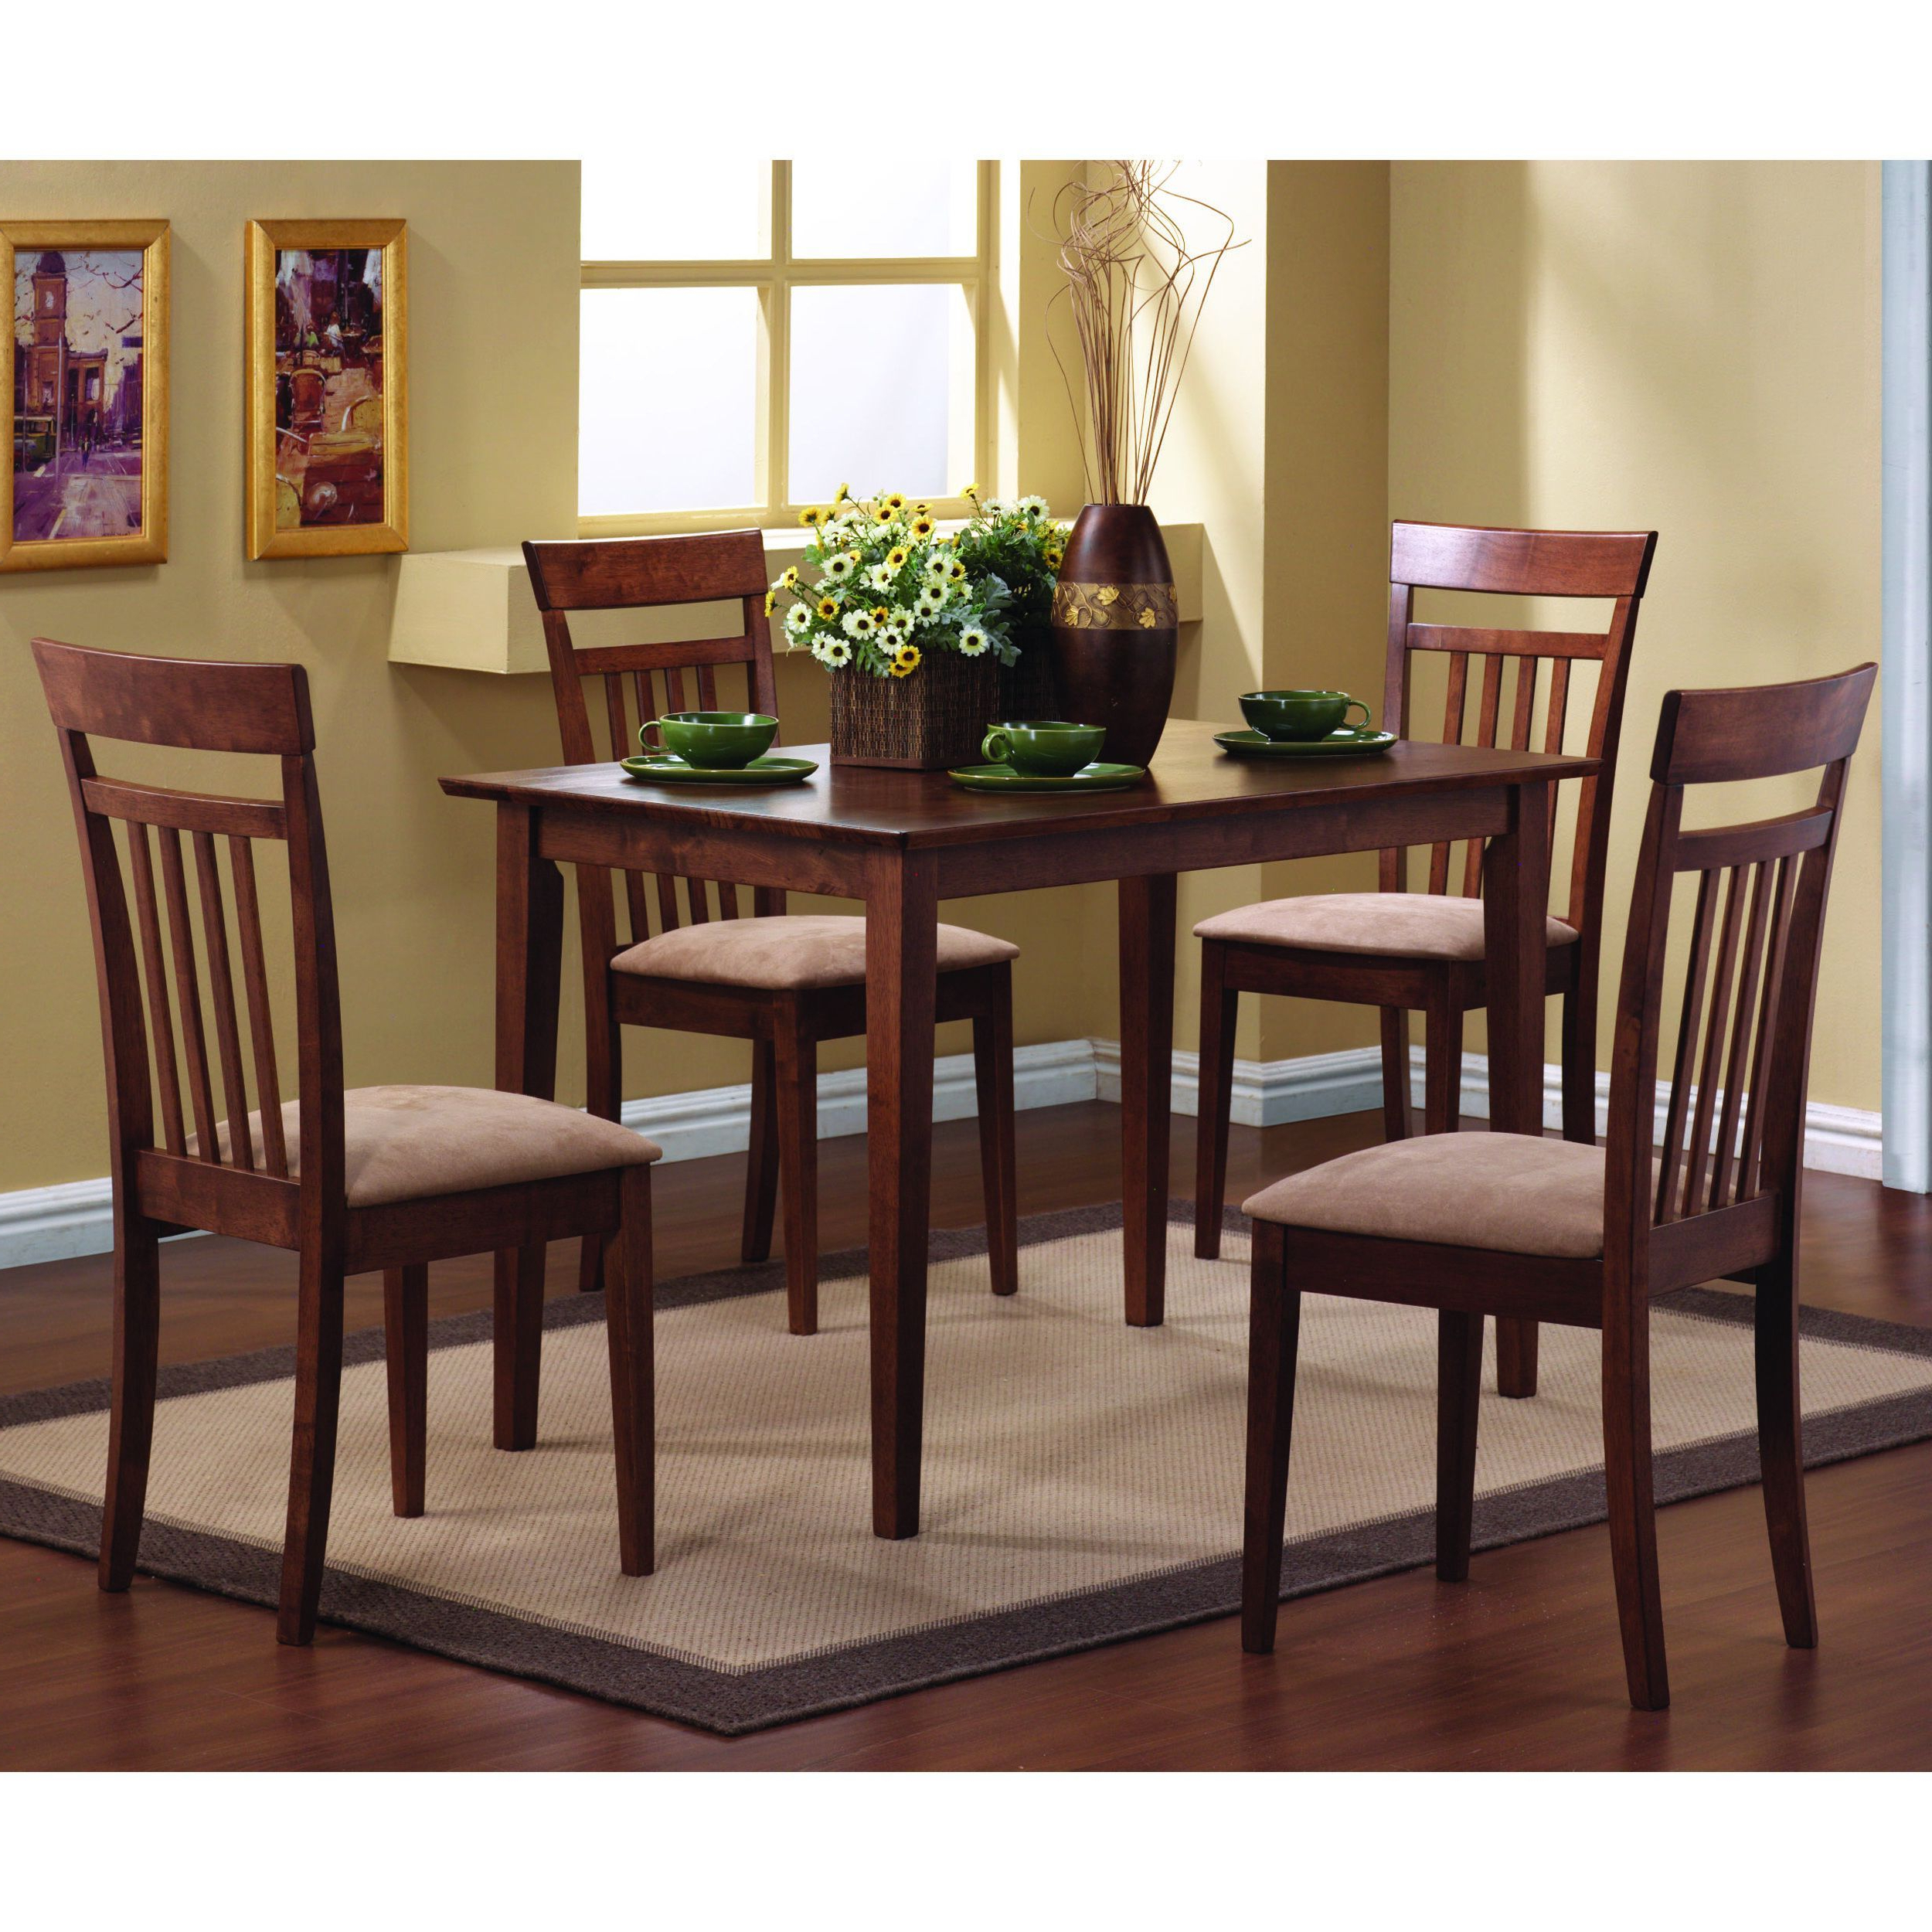 Current Transitional 4 Seating Square Casual Dining Tables Regarding This Lovely Dining Table And Chair Set Will Be The Perfect (View 3 of 25)